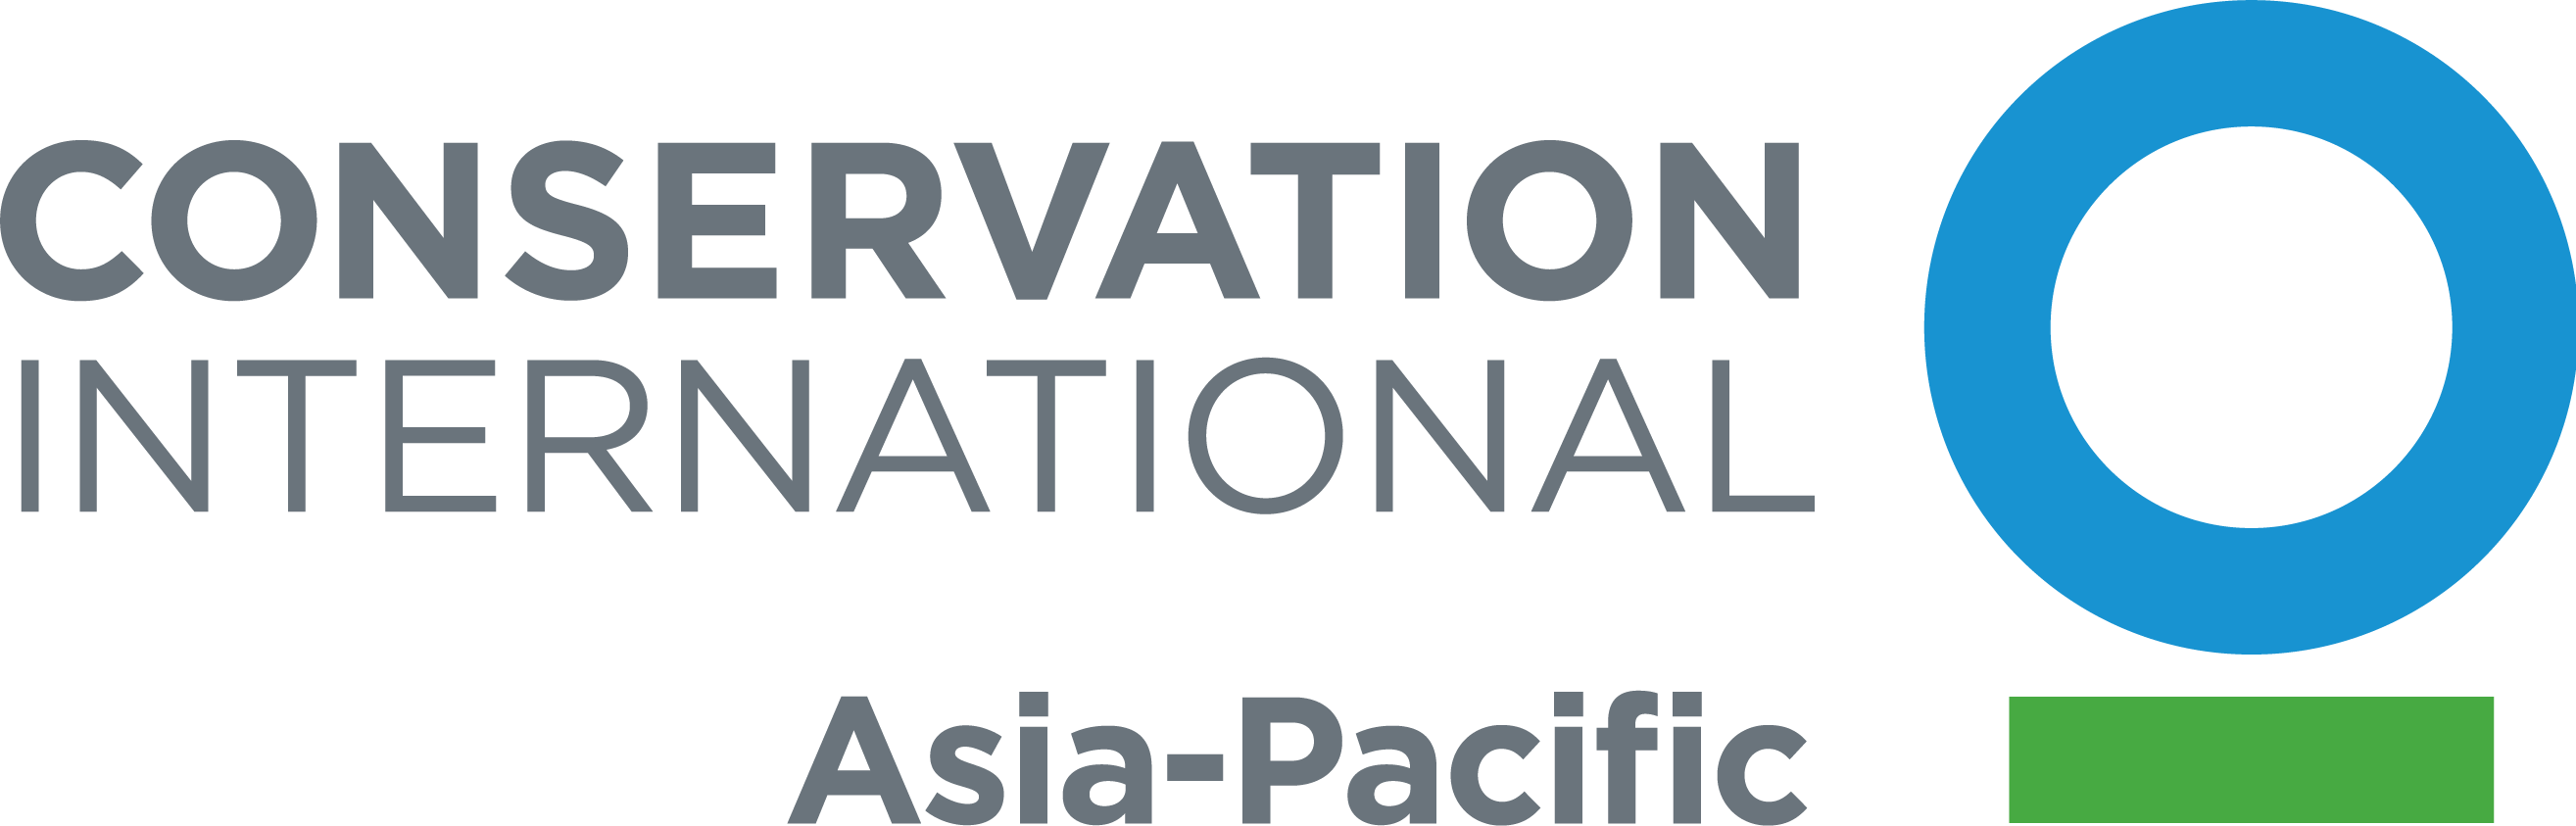 Conservation International Singapore, Ltd